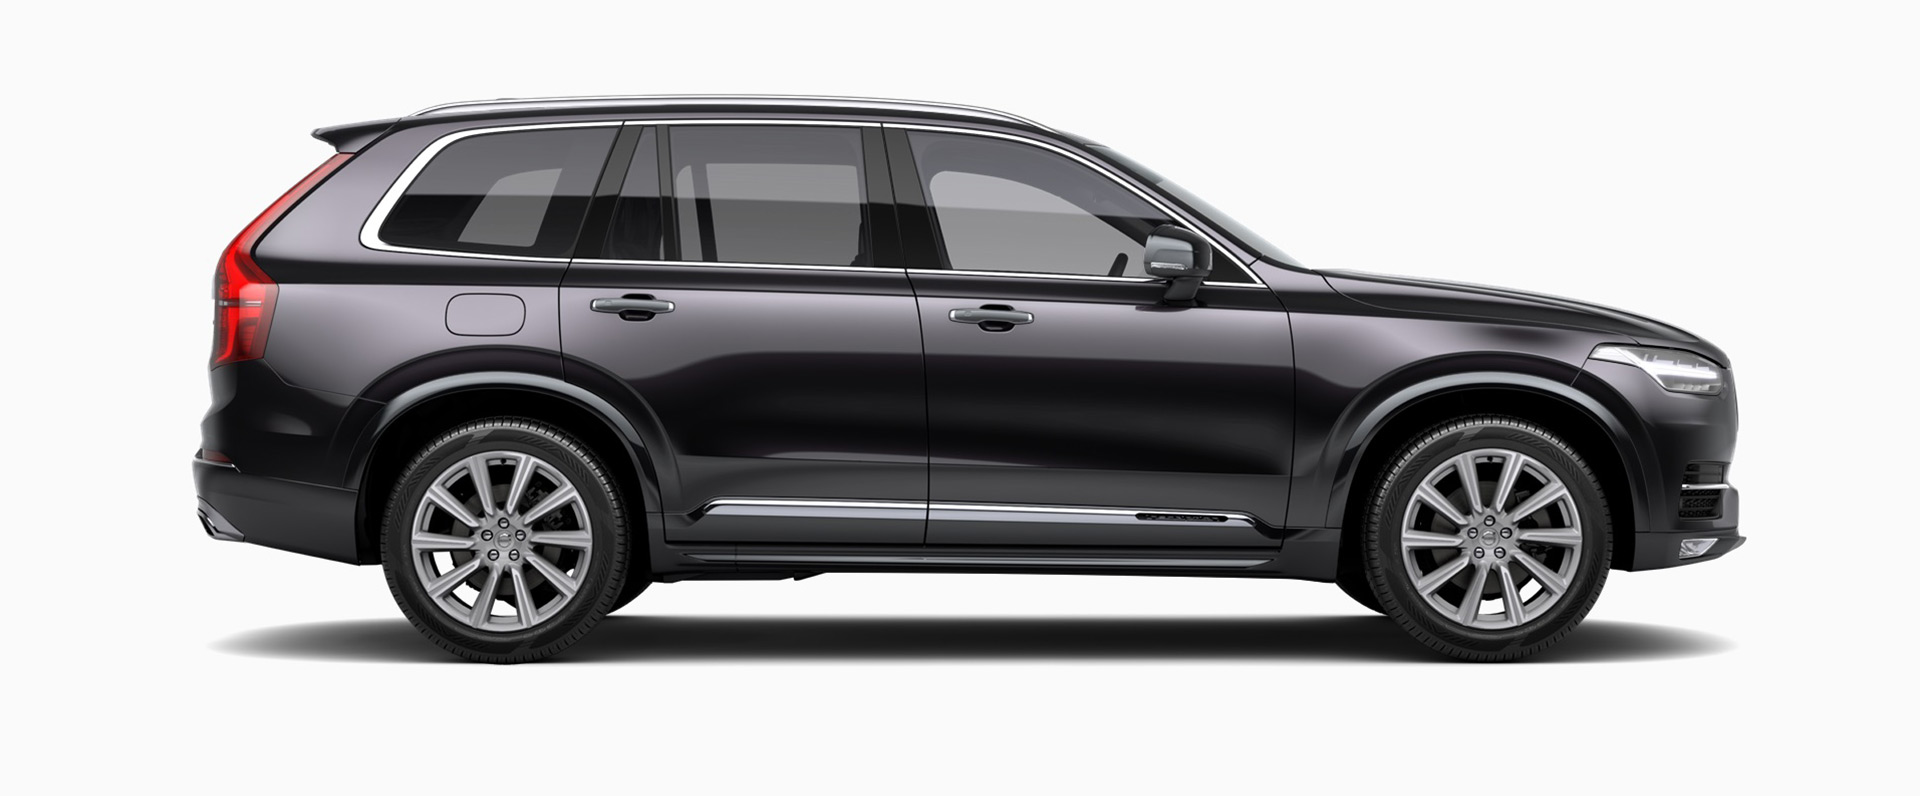 xc90-lateral